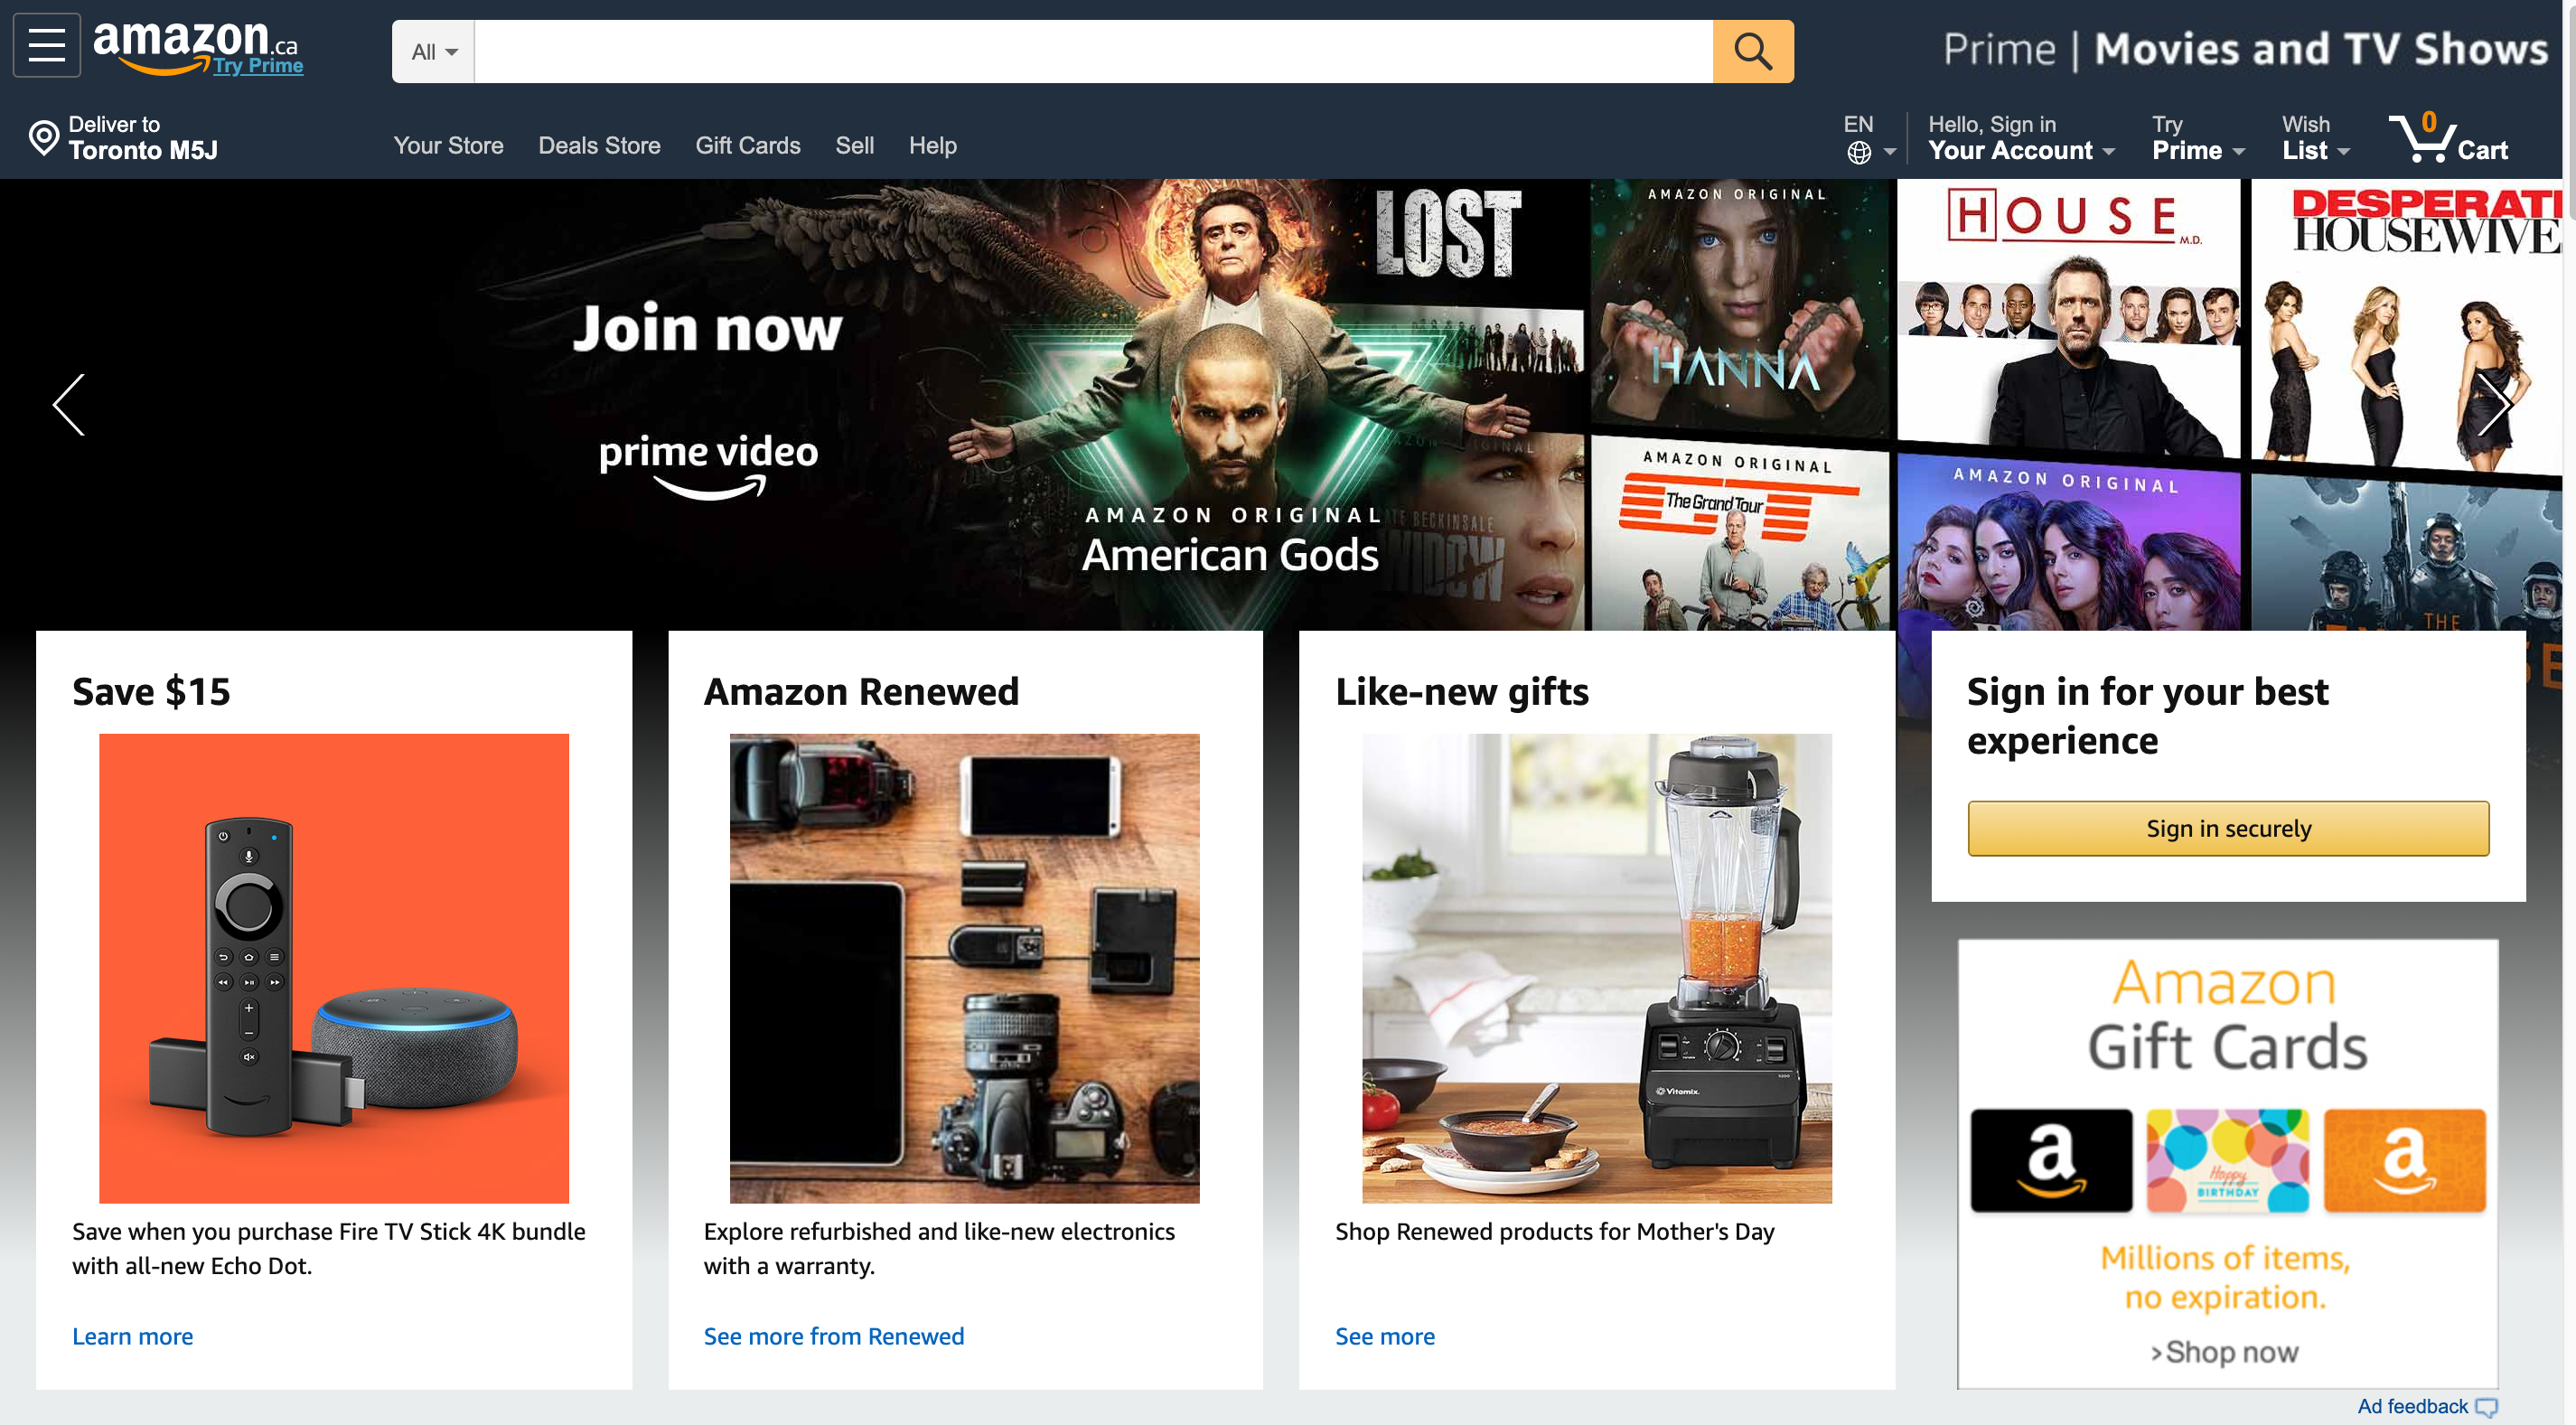 Amazon and the customer experience